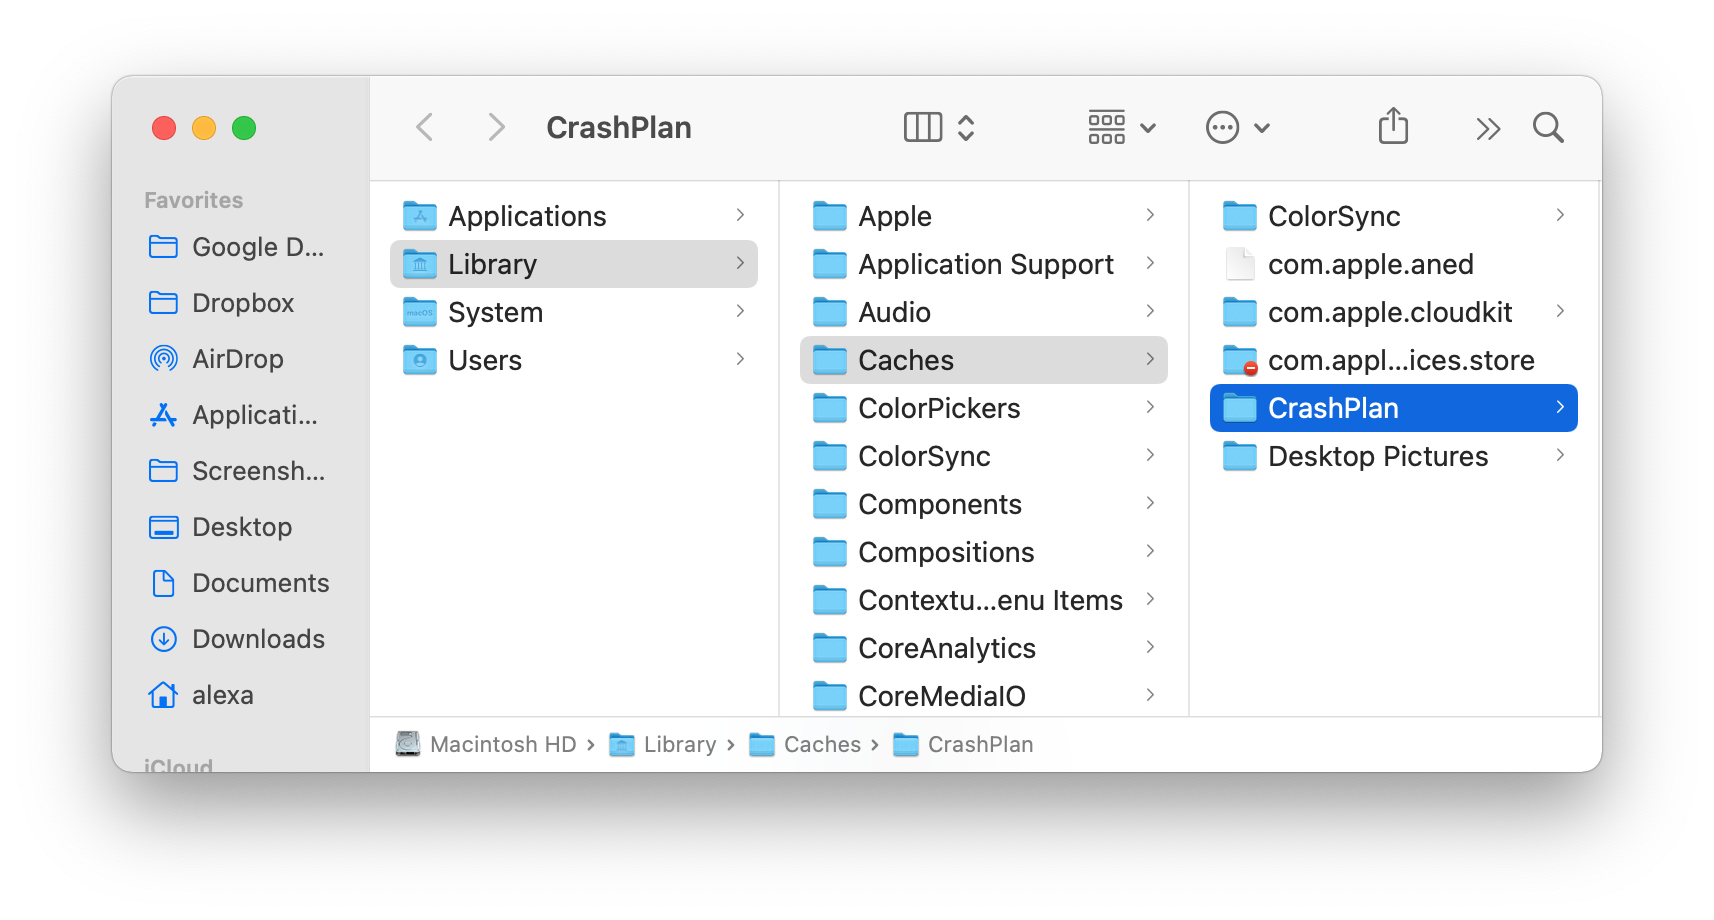 crashplan support files in Library